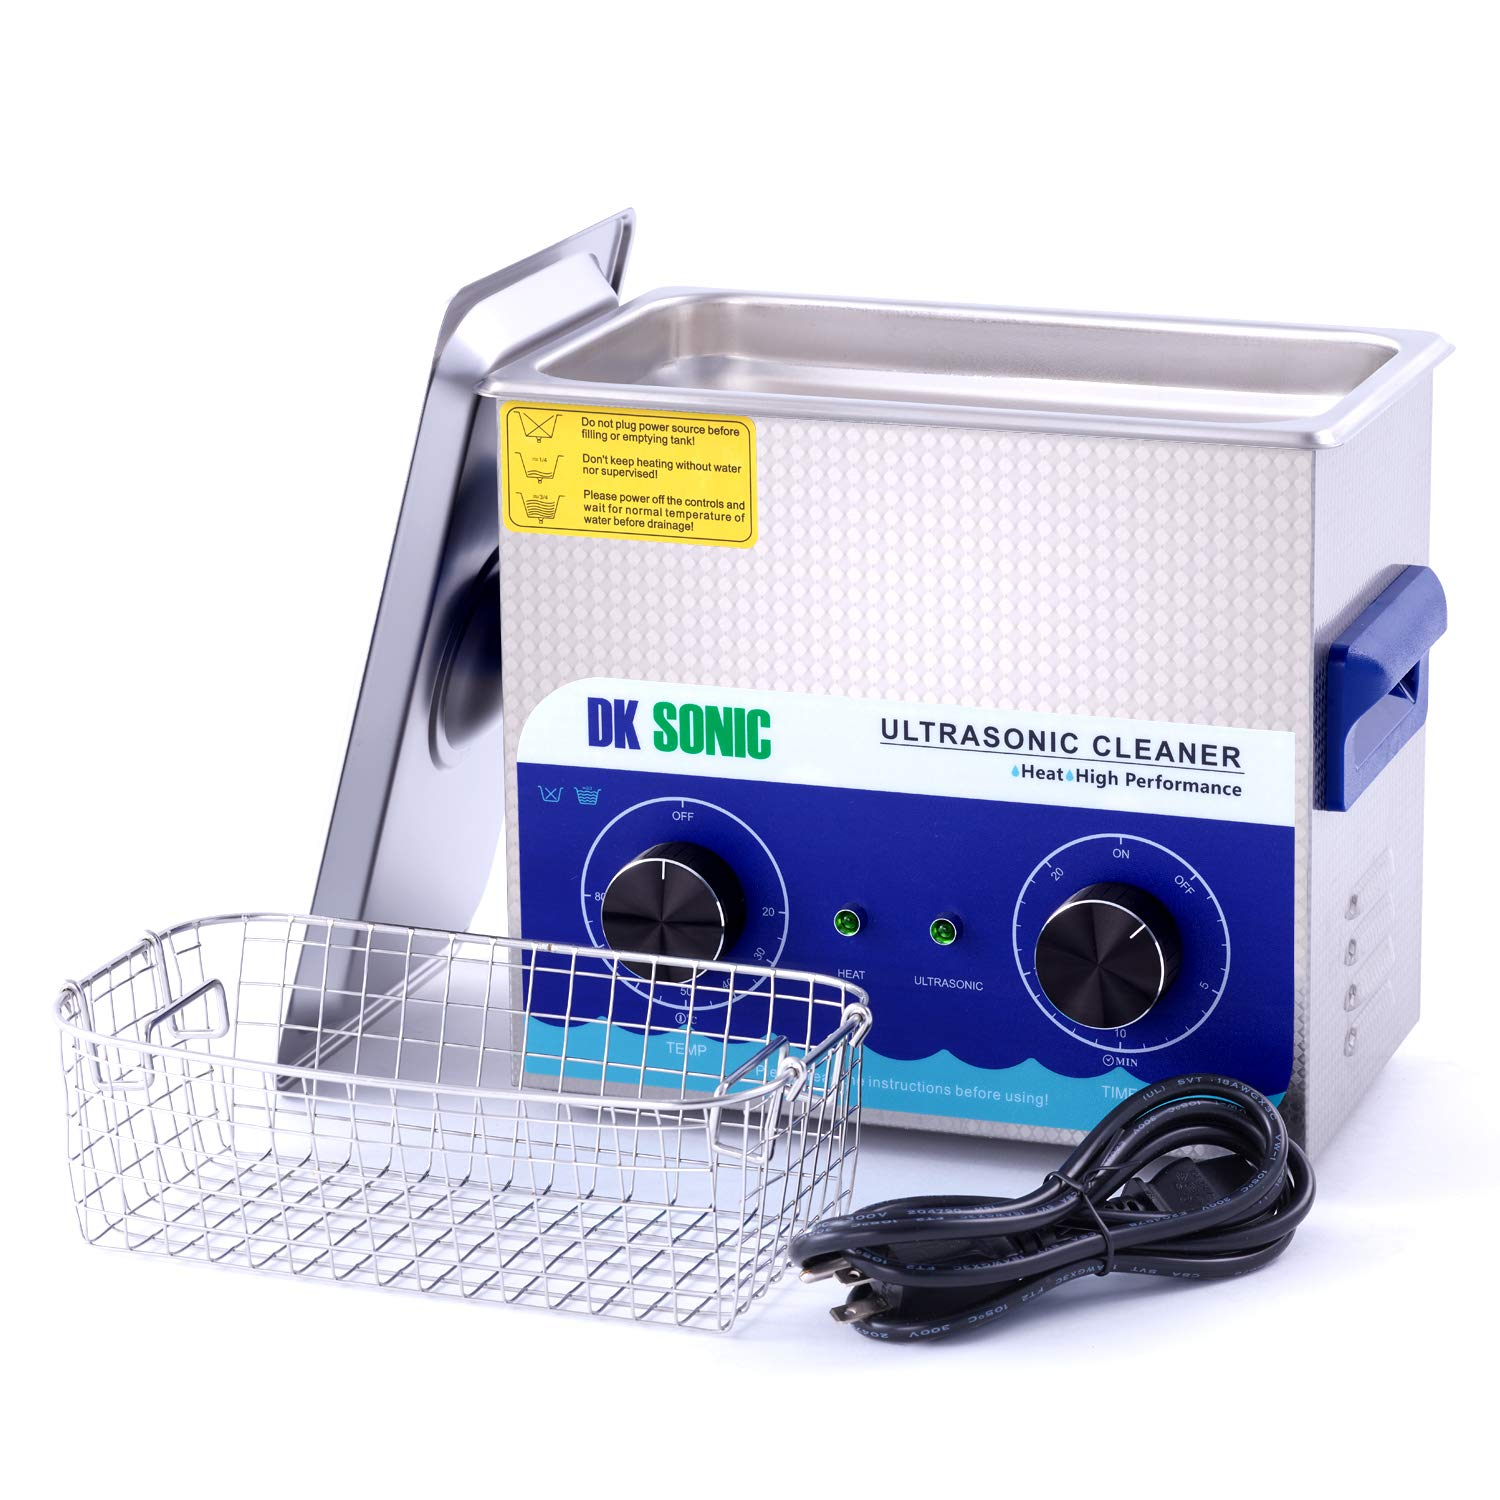 Commercial Ultrasonic Gun Cleaner Heated - DK SONIC 3L 120W Ultrasonic Jewelry Cleaner with Heater Basket for Parts Denture Carburetor Eyeglass Fuel Injector Record Circuit Board Dental 40KHz by DK SONIC (Image #7)